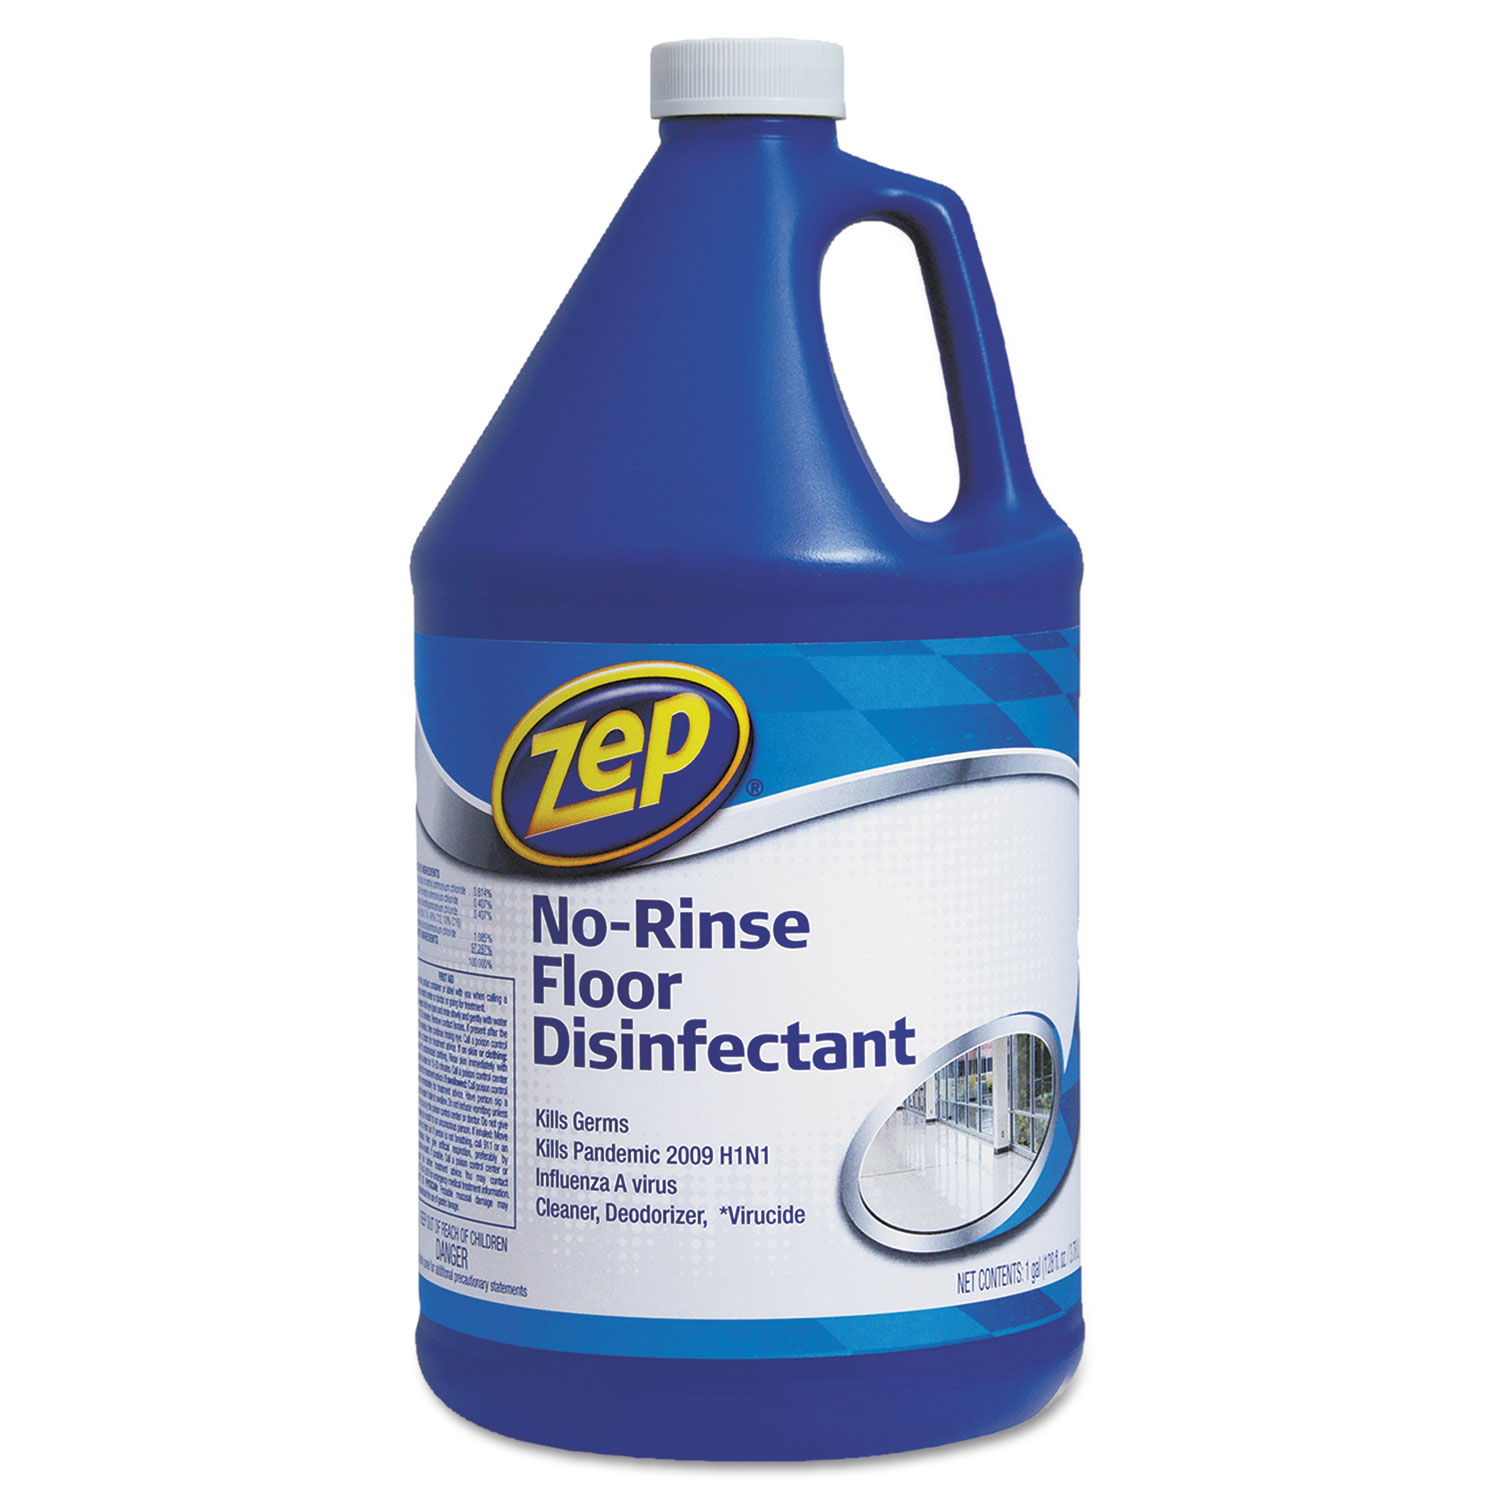 No-Rinse Floor Disinfectant, 1 Gal Bottle